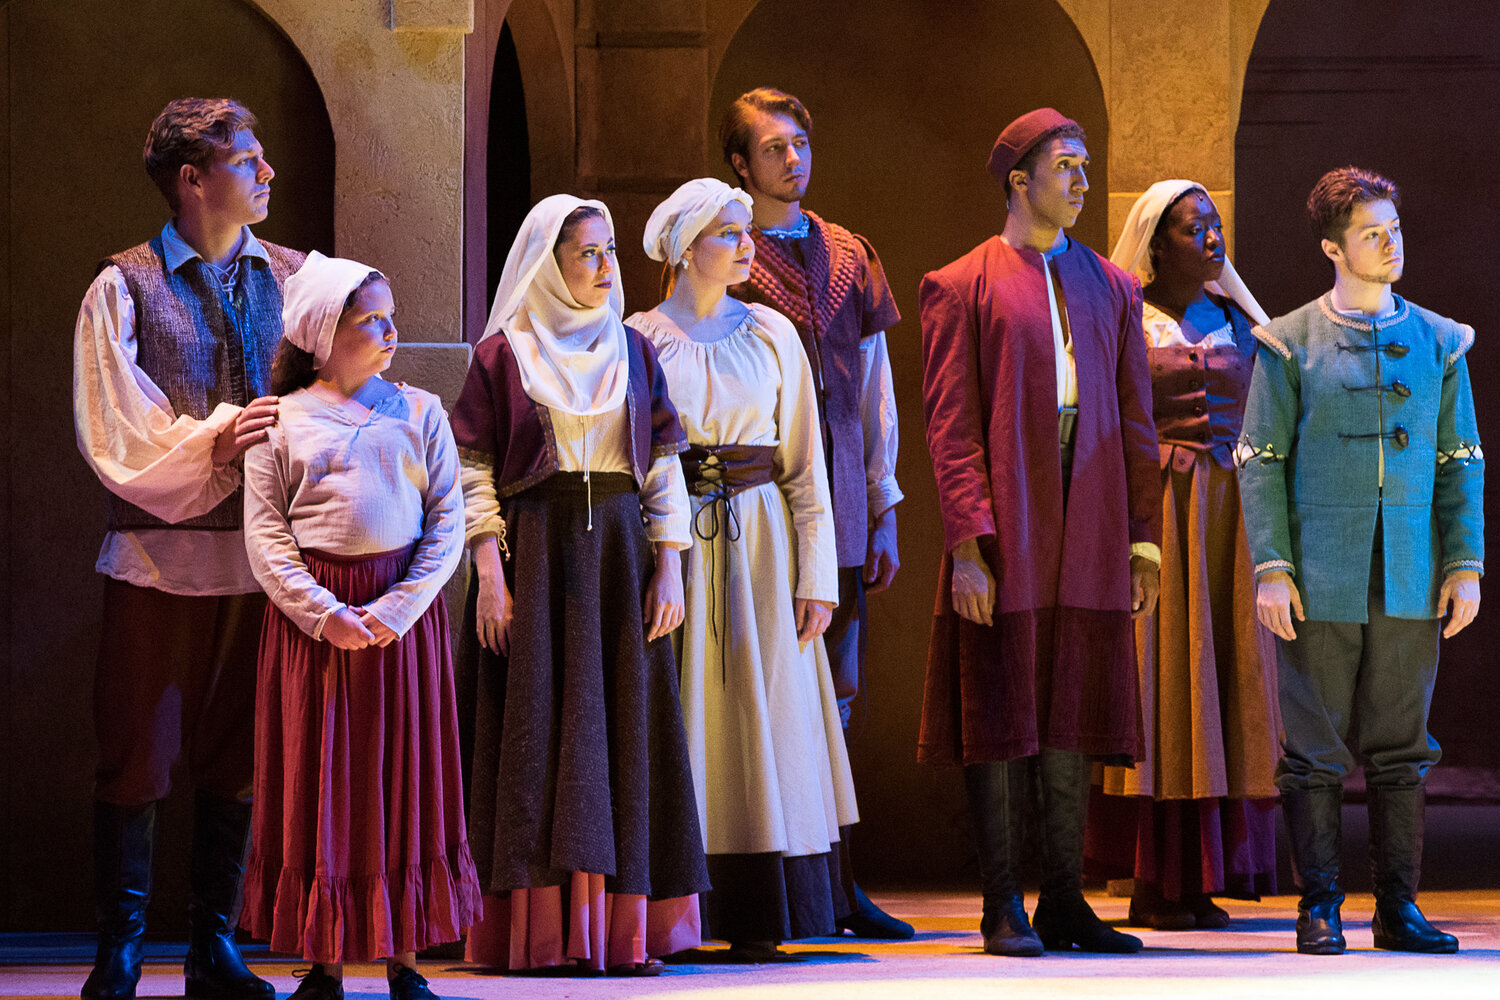 Townspeople's Headwear- Hunchback of Notre Dame- Music Theatre Wichita 2017  Costume Design by George T Mitchell. All designs by the seasonal staff of MTW. Photos courtesy of Christopher Clark and John Fritchman.